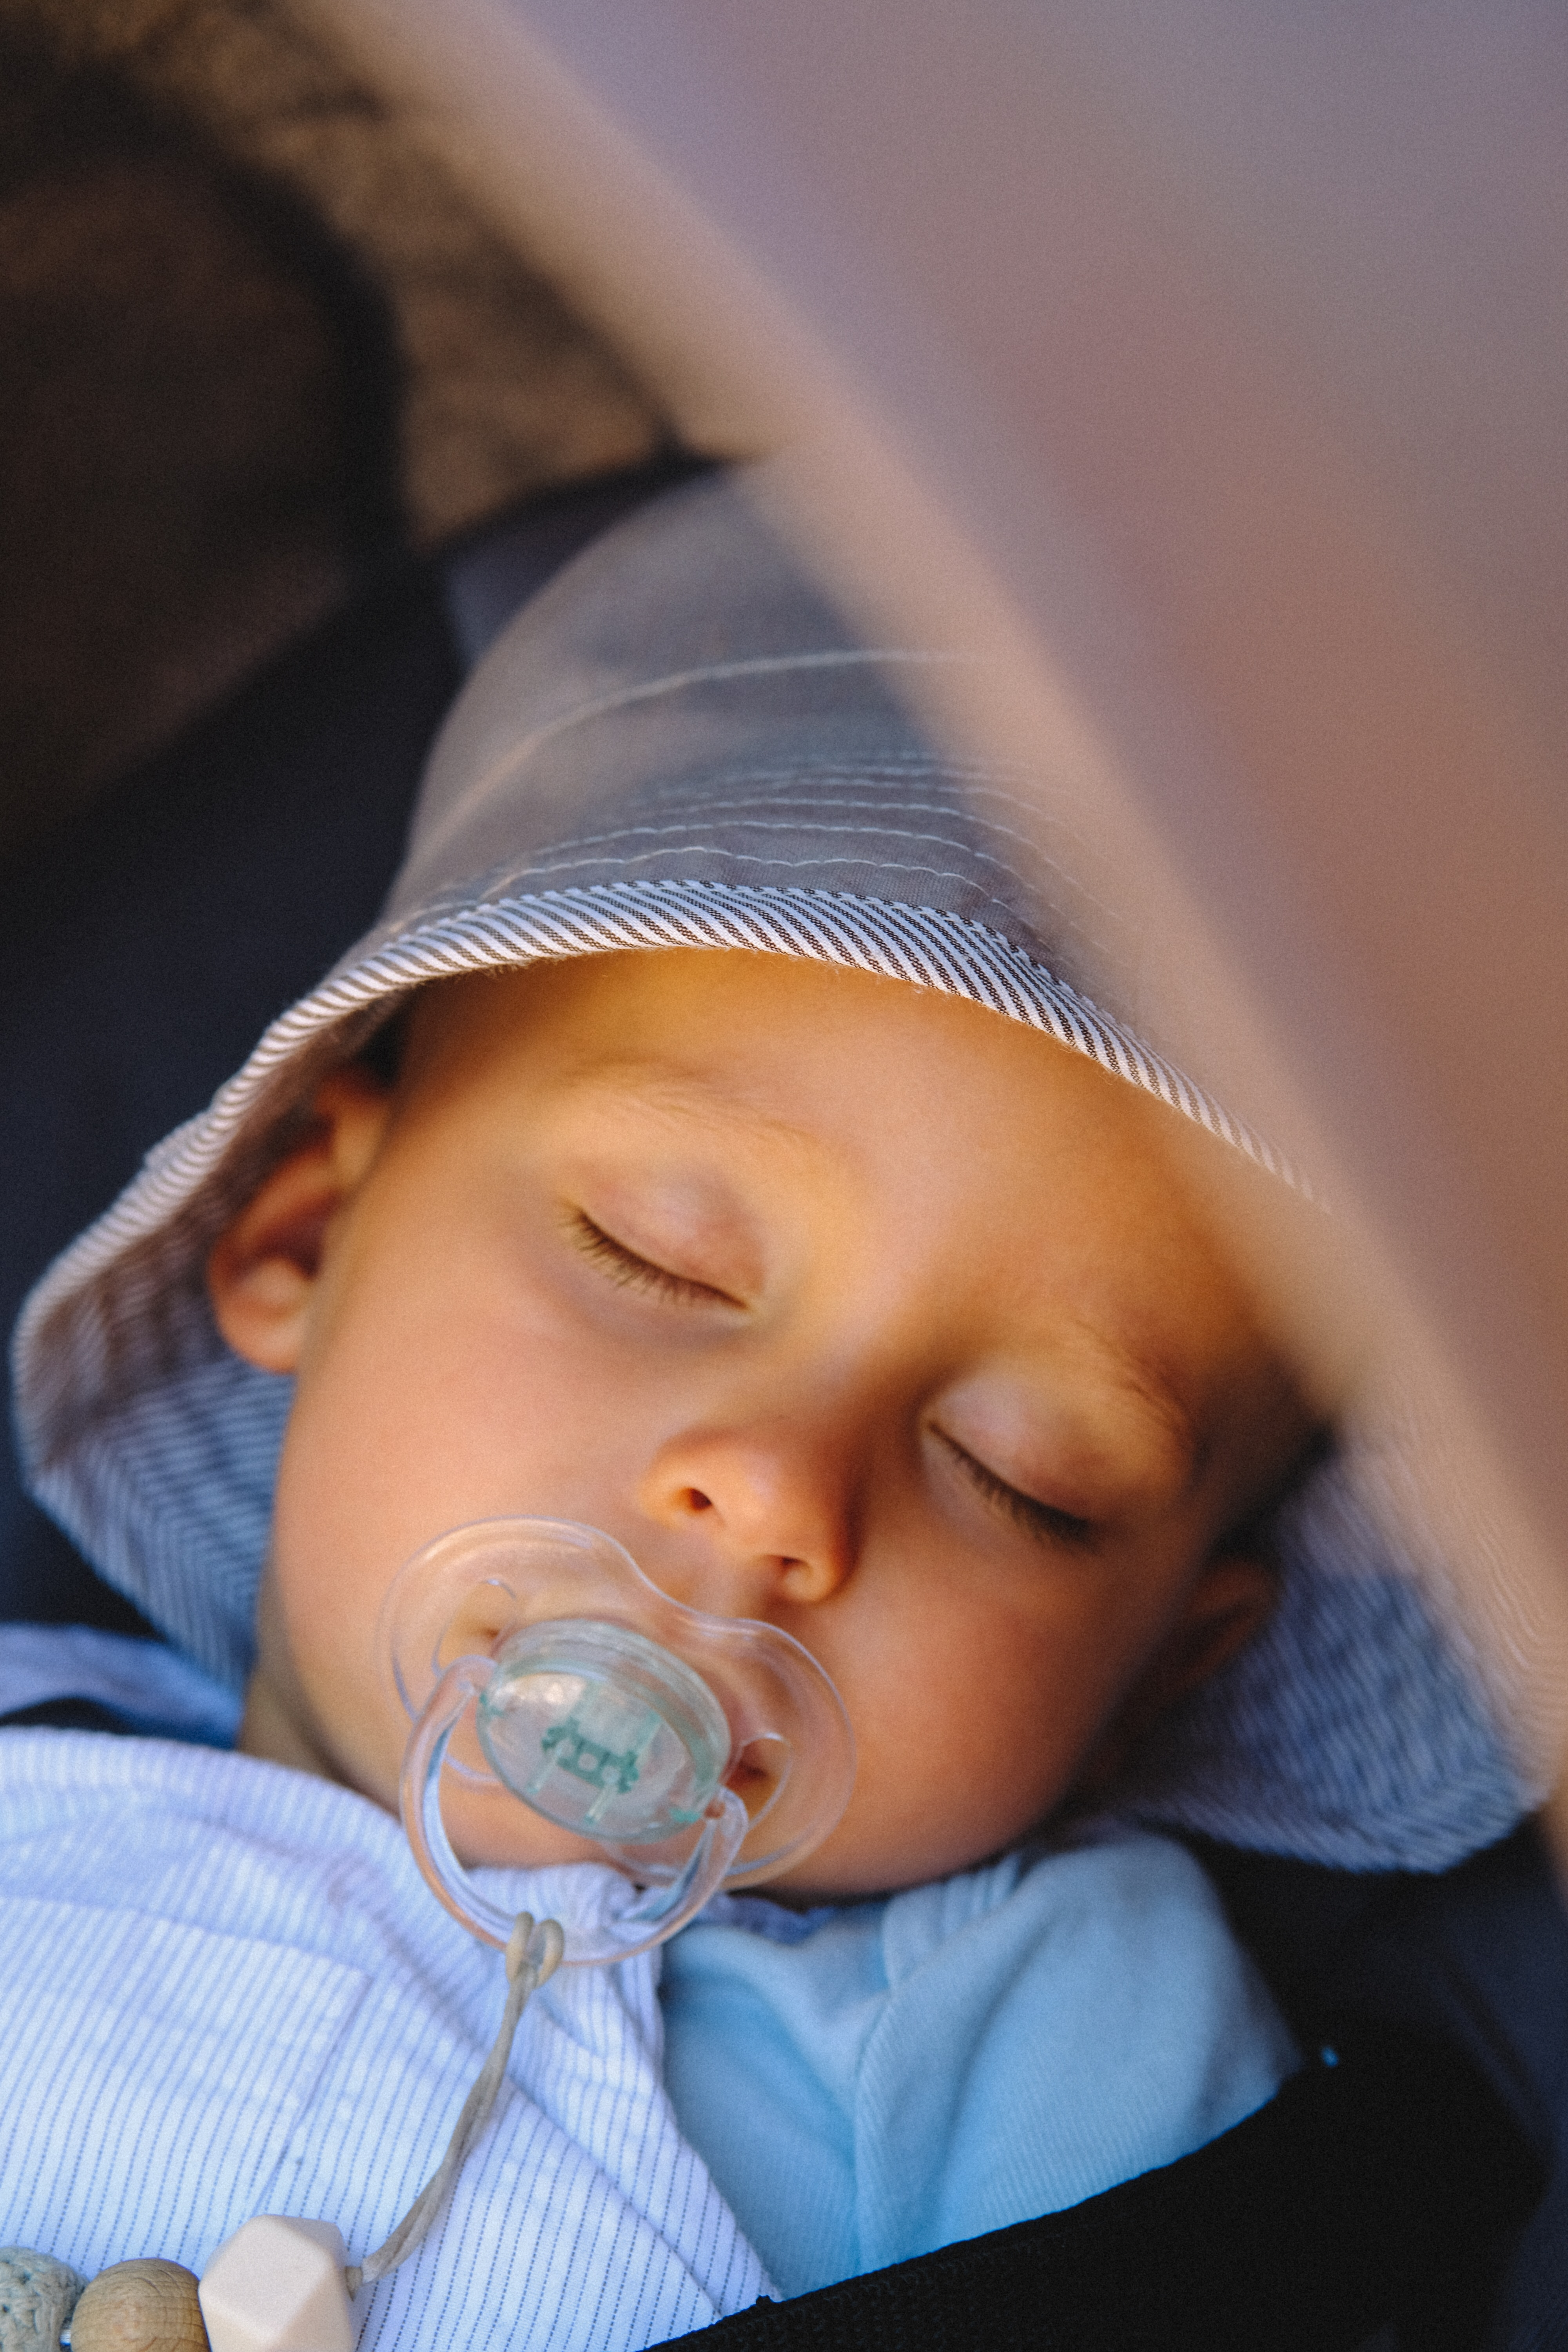 Why are babies naps short?